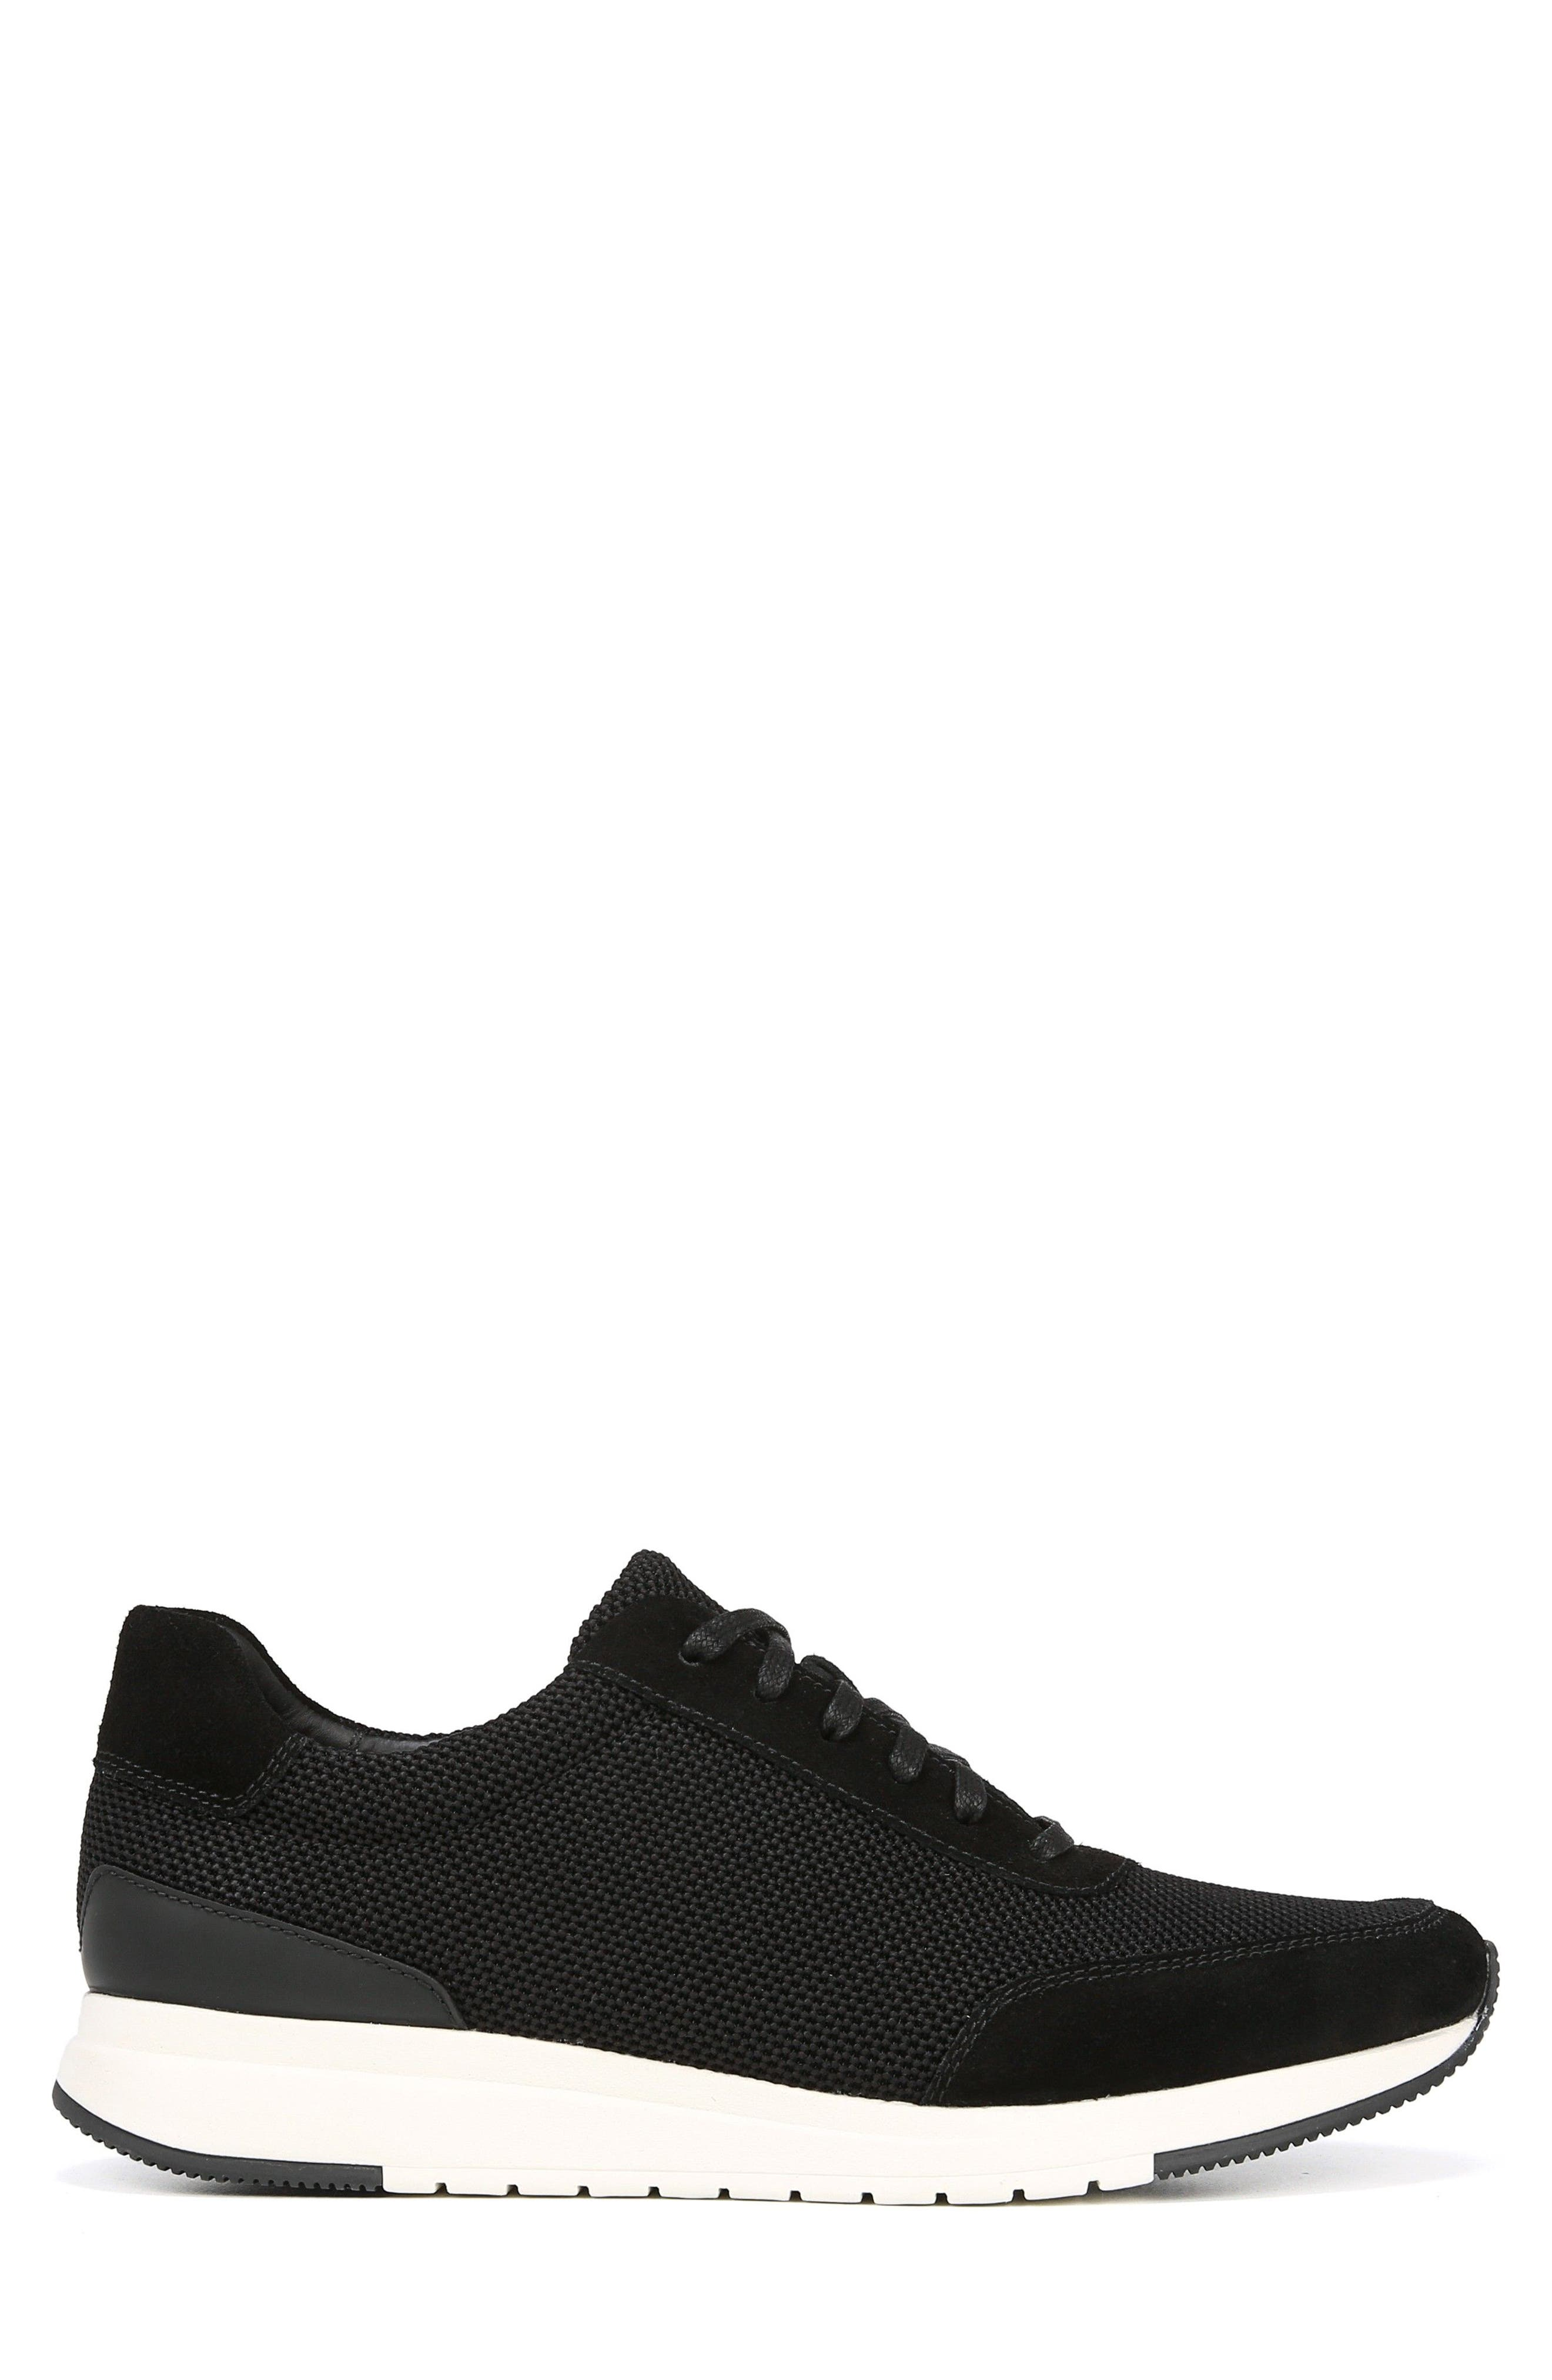 Payton Mesh Sneaker,                             Alternate thumbnail 3, color,                             BLACK